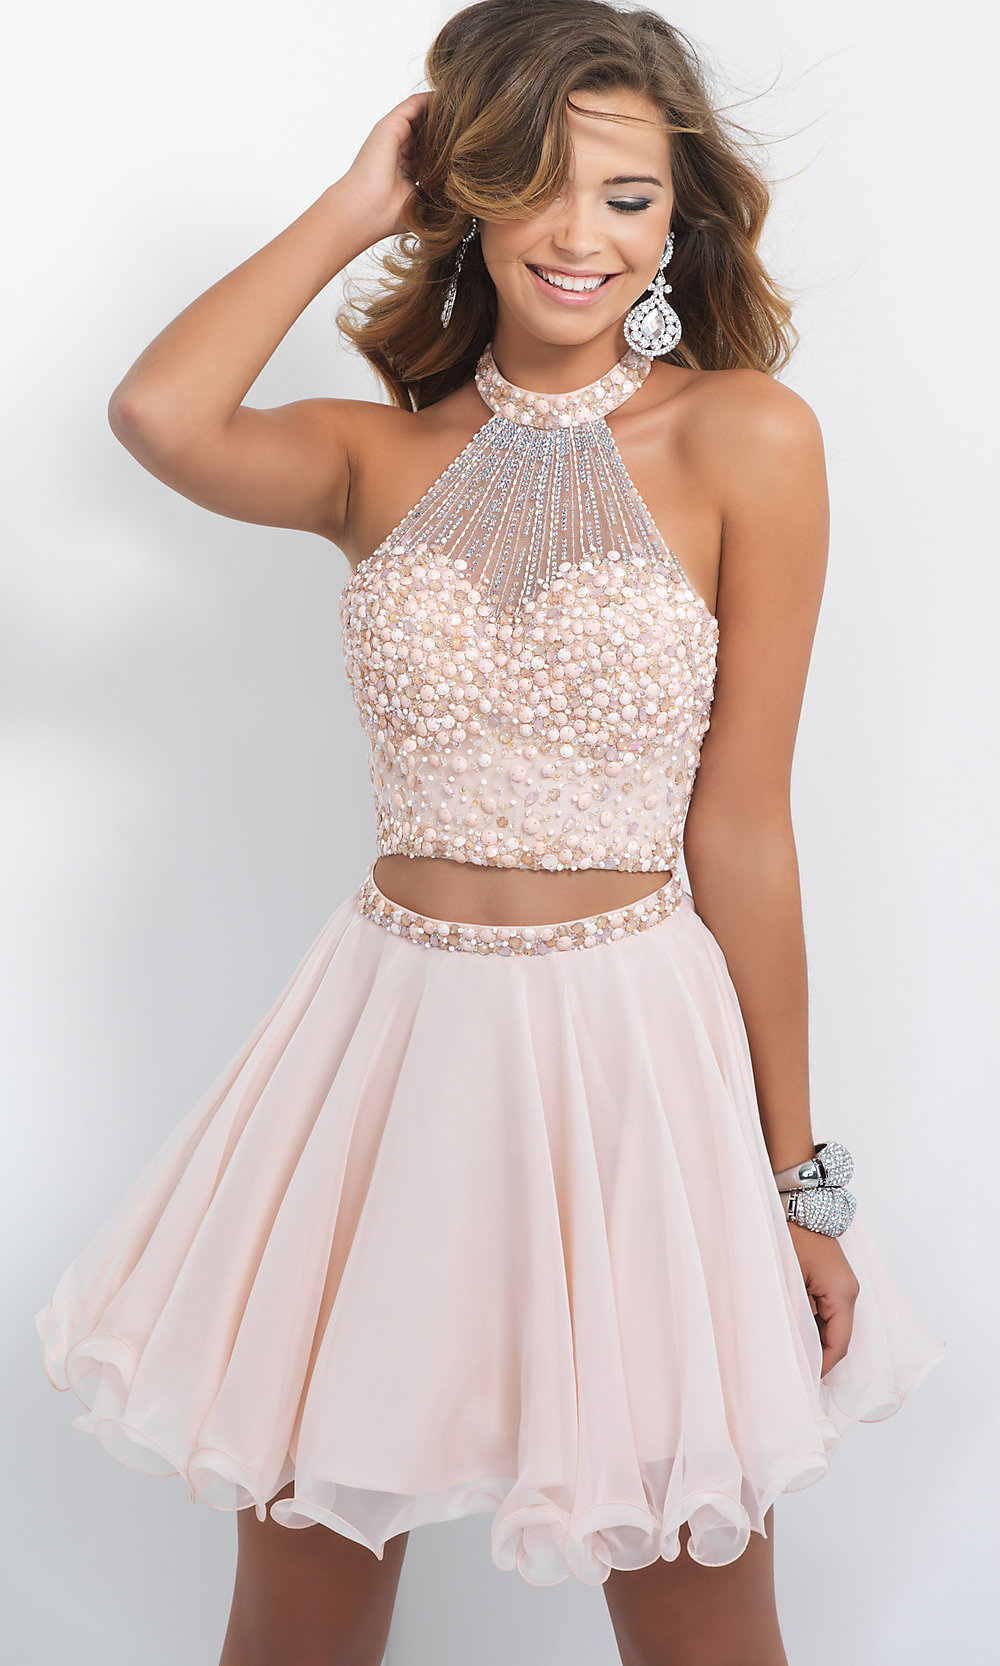 Gorgeous Expensive And Cheap Homecoming Dresses Gorgeous Expensive And Cheap Homecoming Dresses new picture